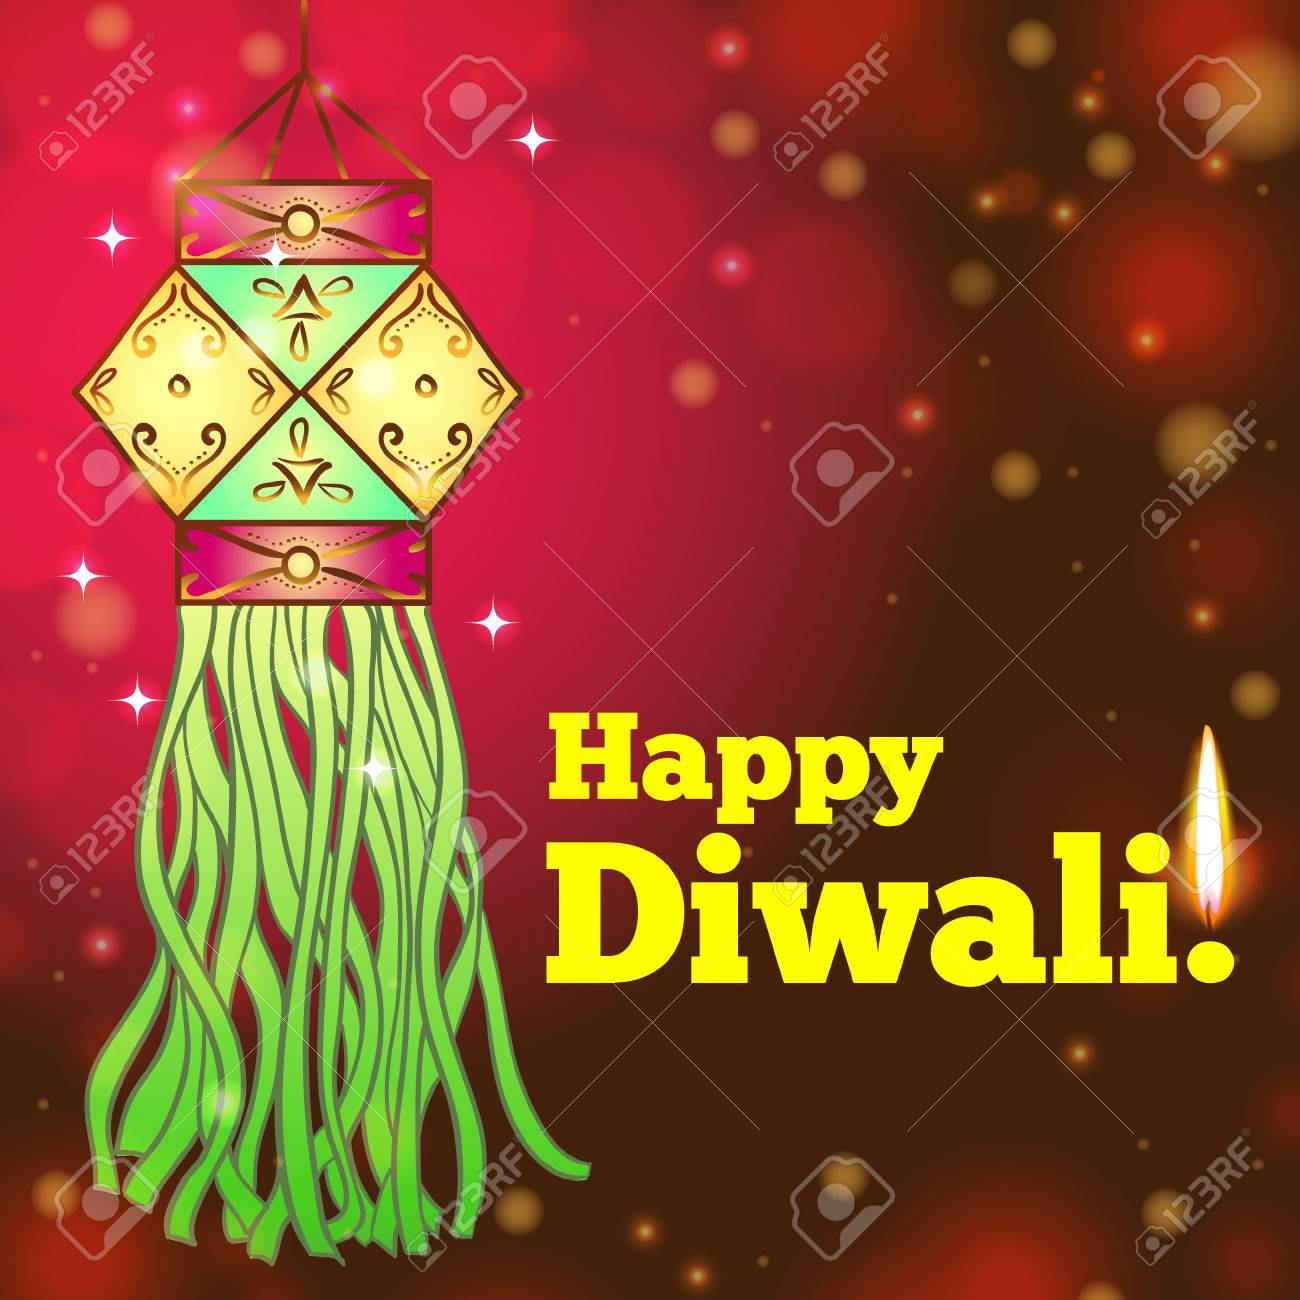 Greeting Card For Diwali With Colorful Lanterns Royalty Free